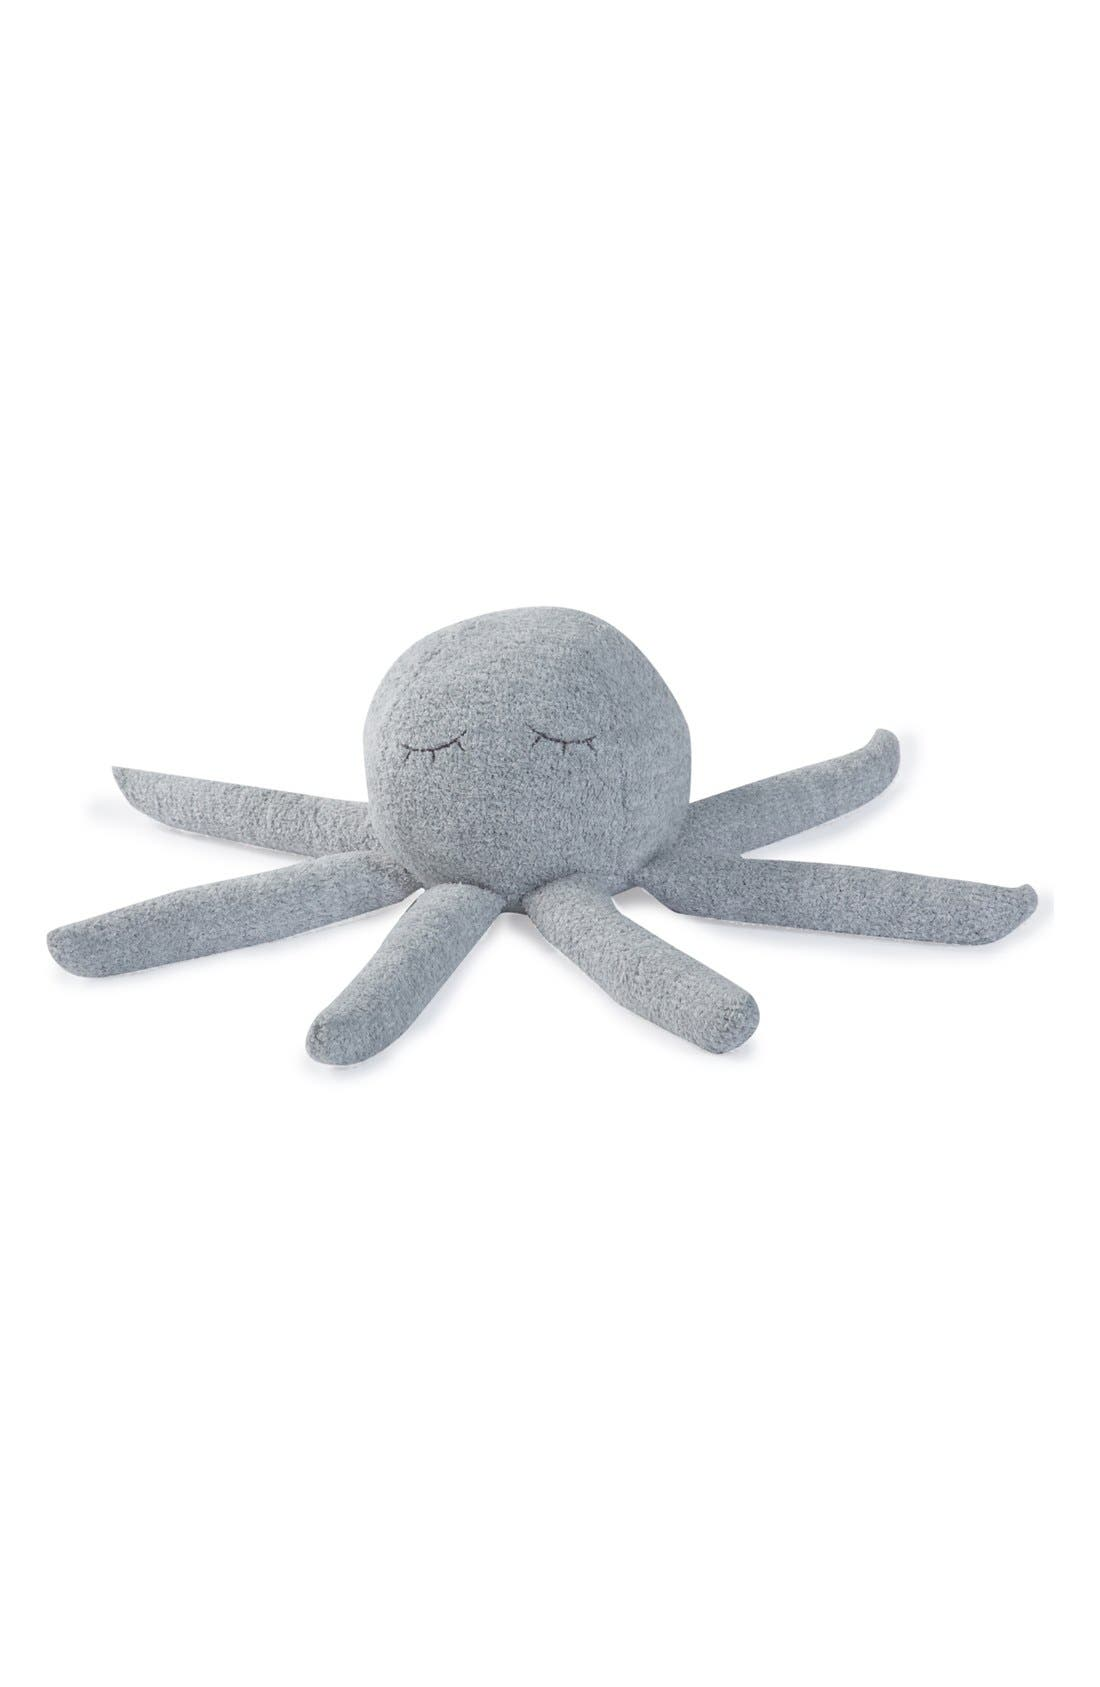 'CozyChic<sup>®</sup> Octopus Buddie' Plush Toy,                             Main thumbnail 1, color,                             OCEAN/WHITE